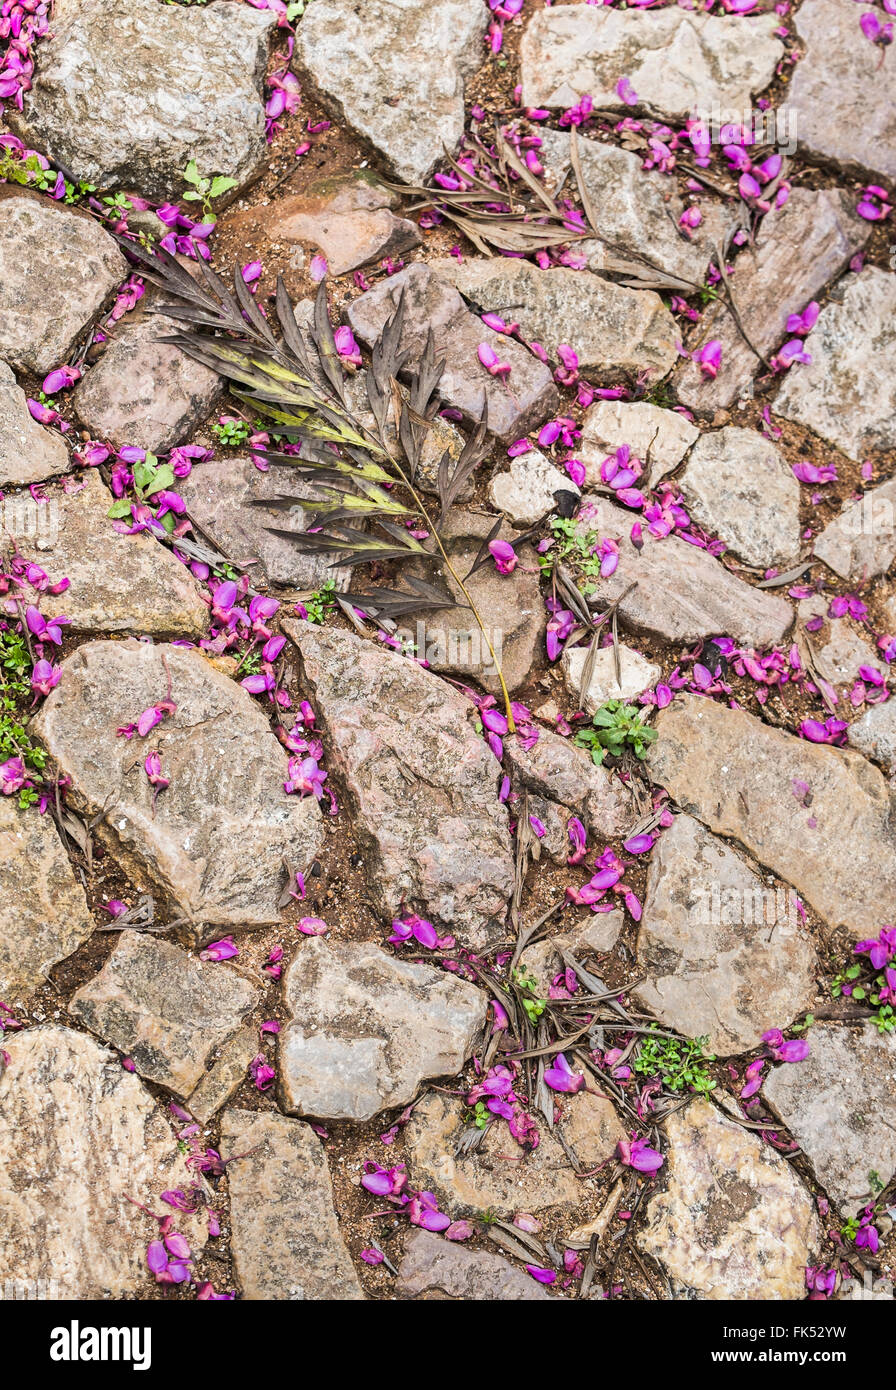 twig and petals on natural stone floor - Stock Image